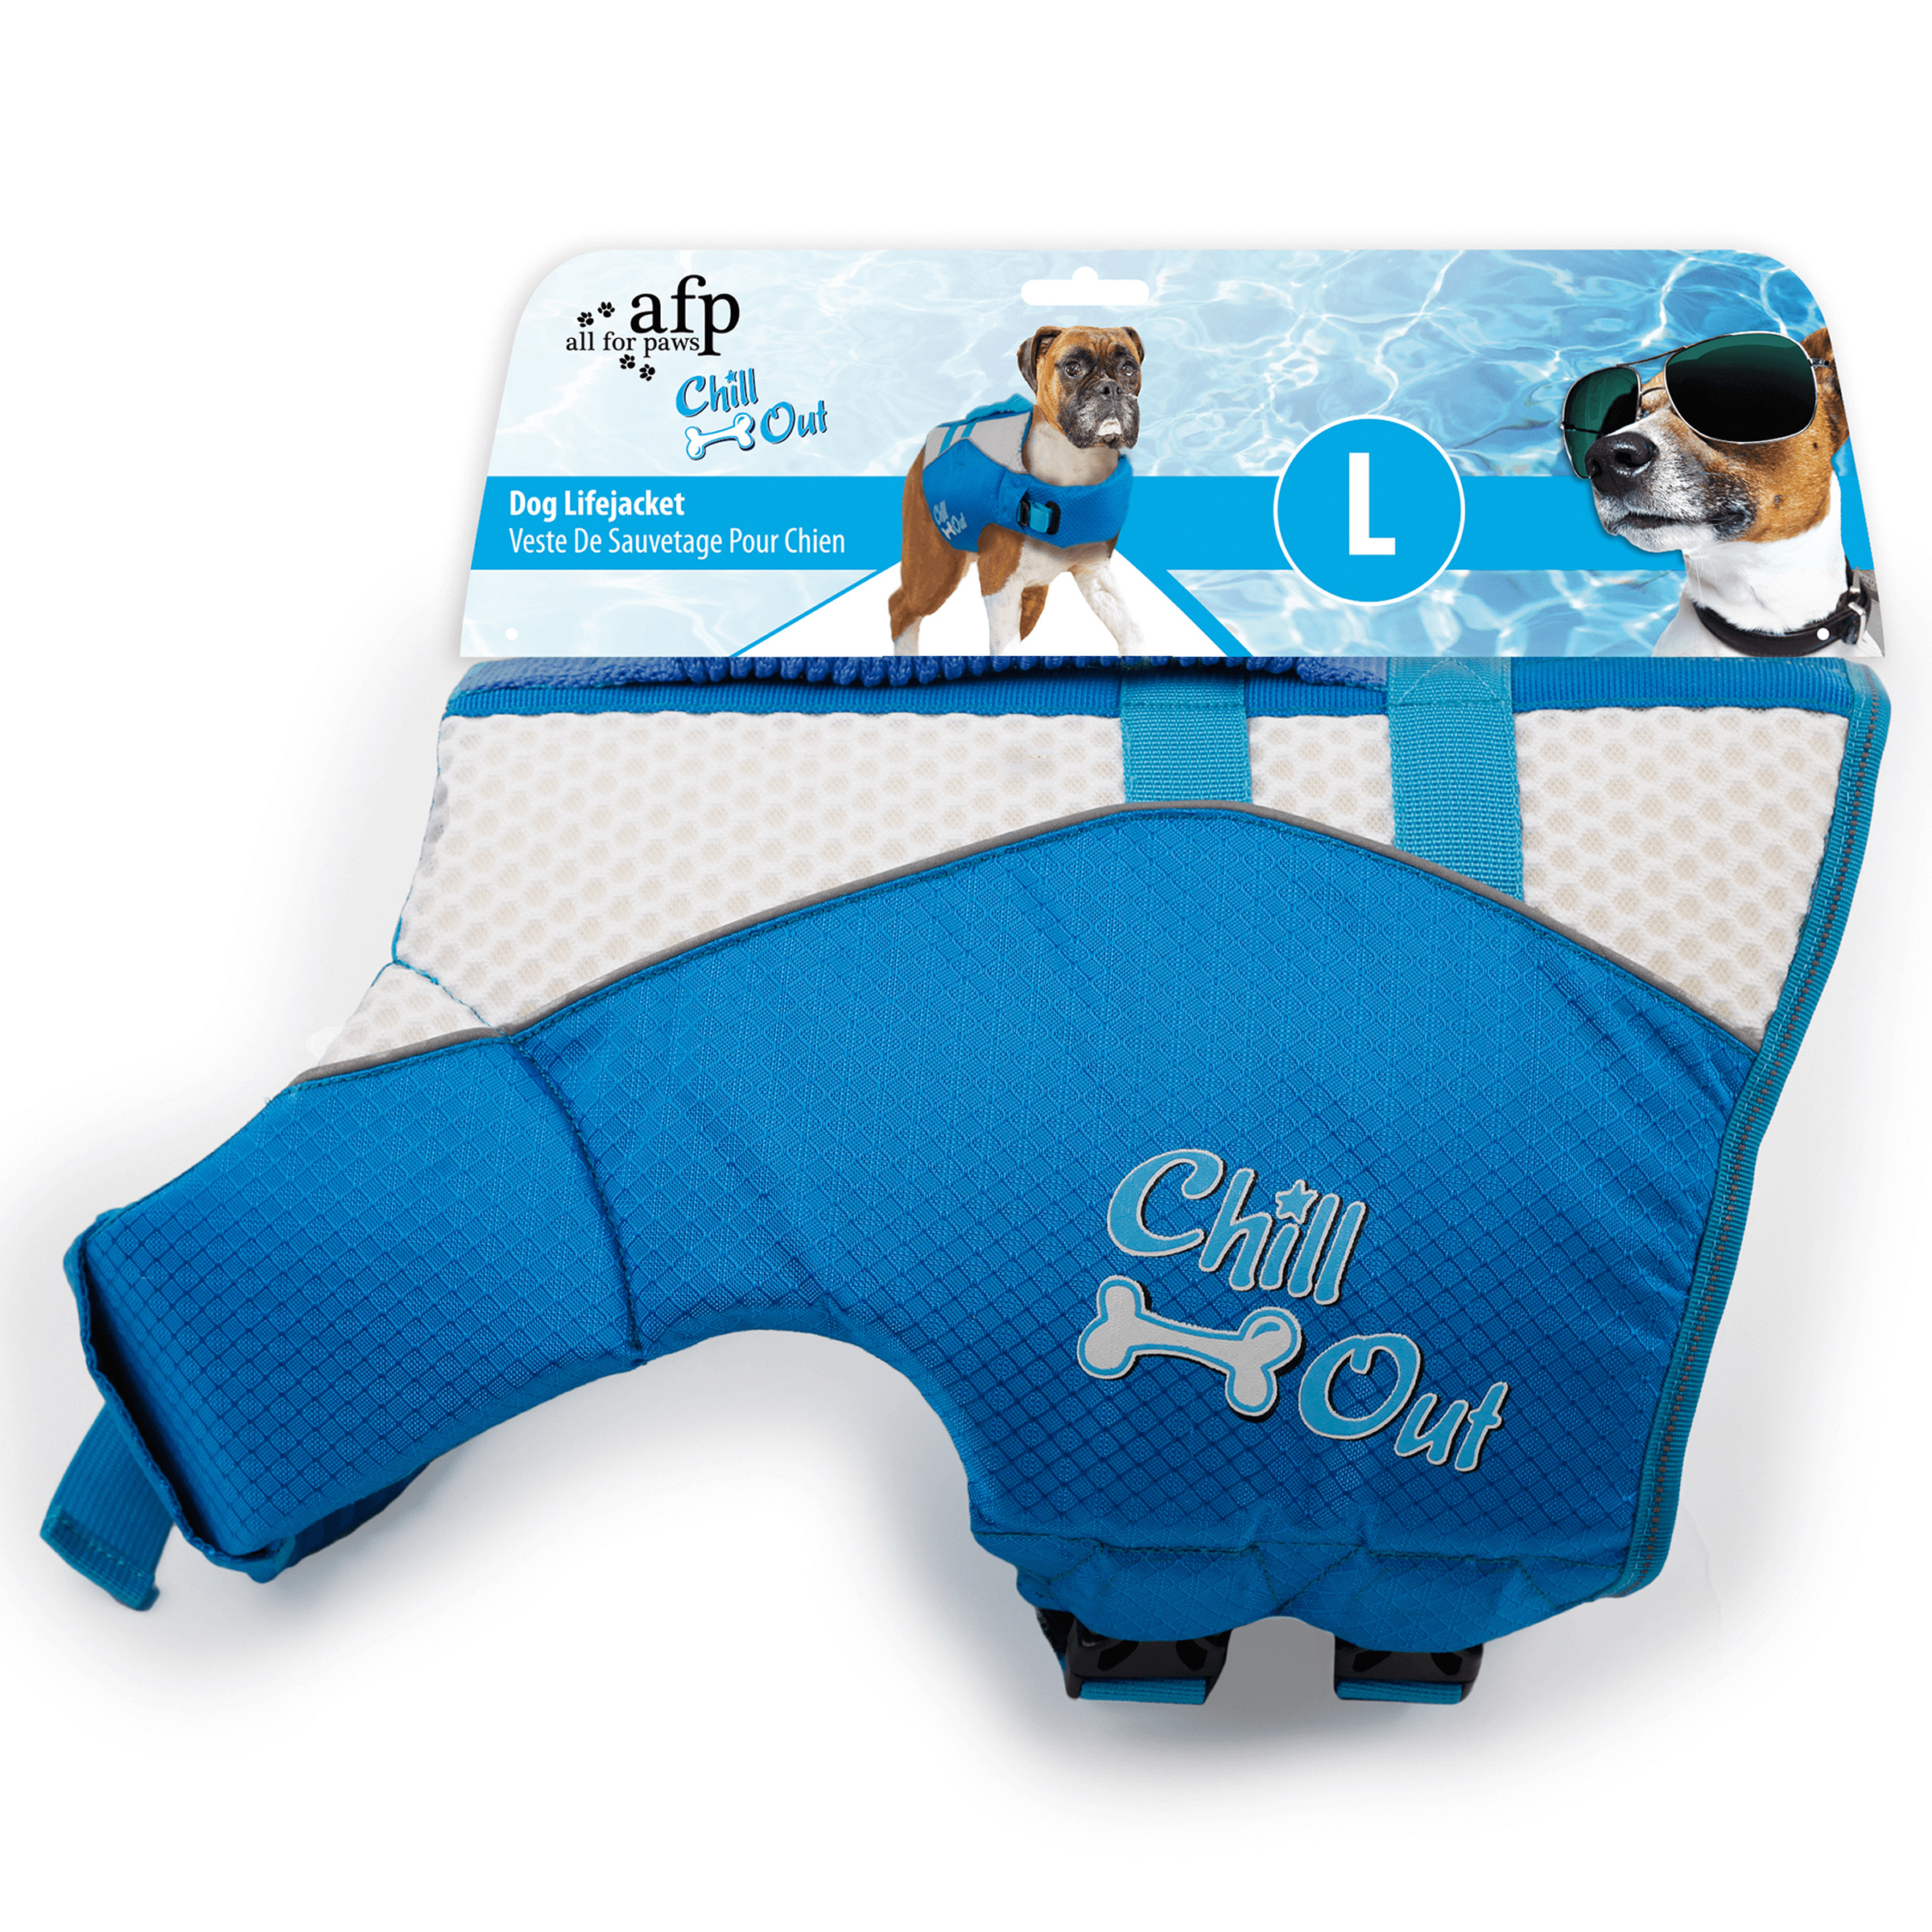 Image of All for Paws AFP Chill Out Schwimmweste Hund mit Griff L 39-45kg